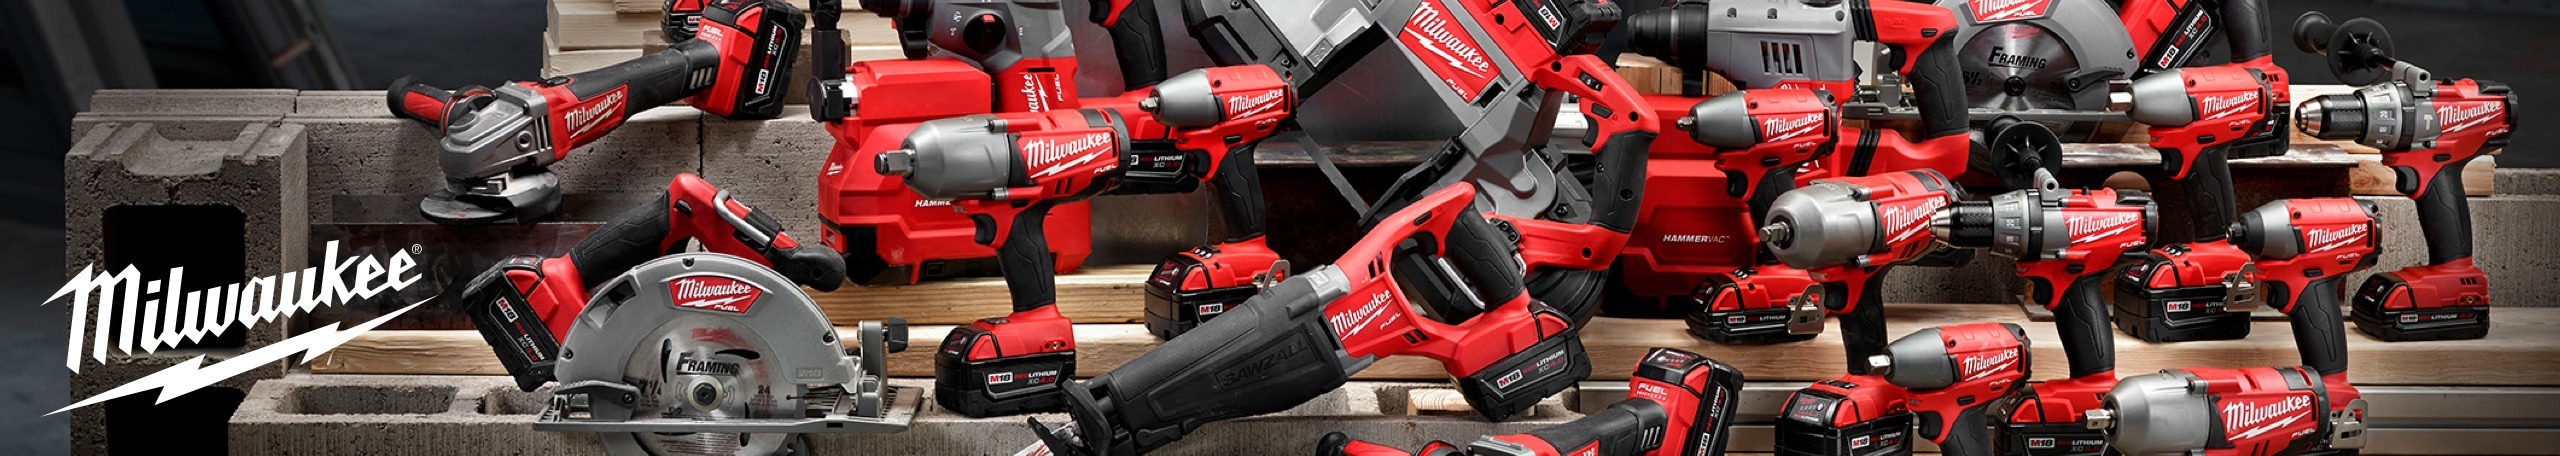 More about Milwaukee power tools at Stevensville